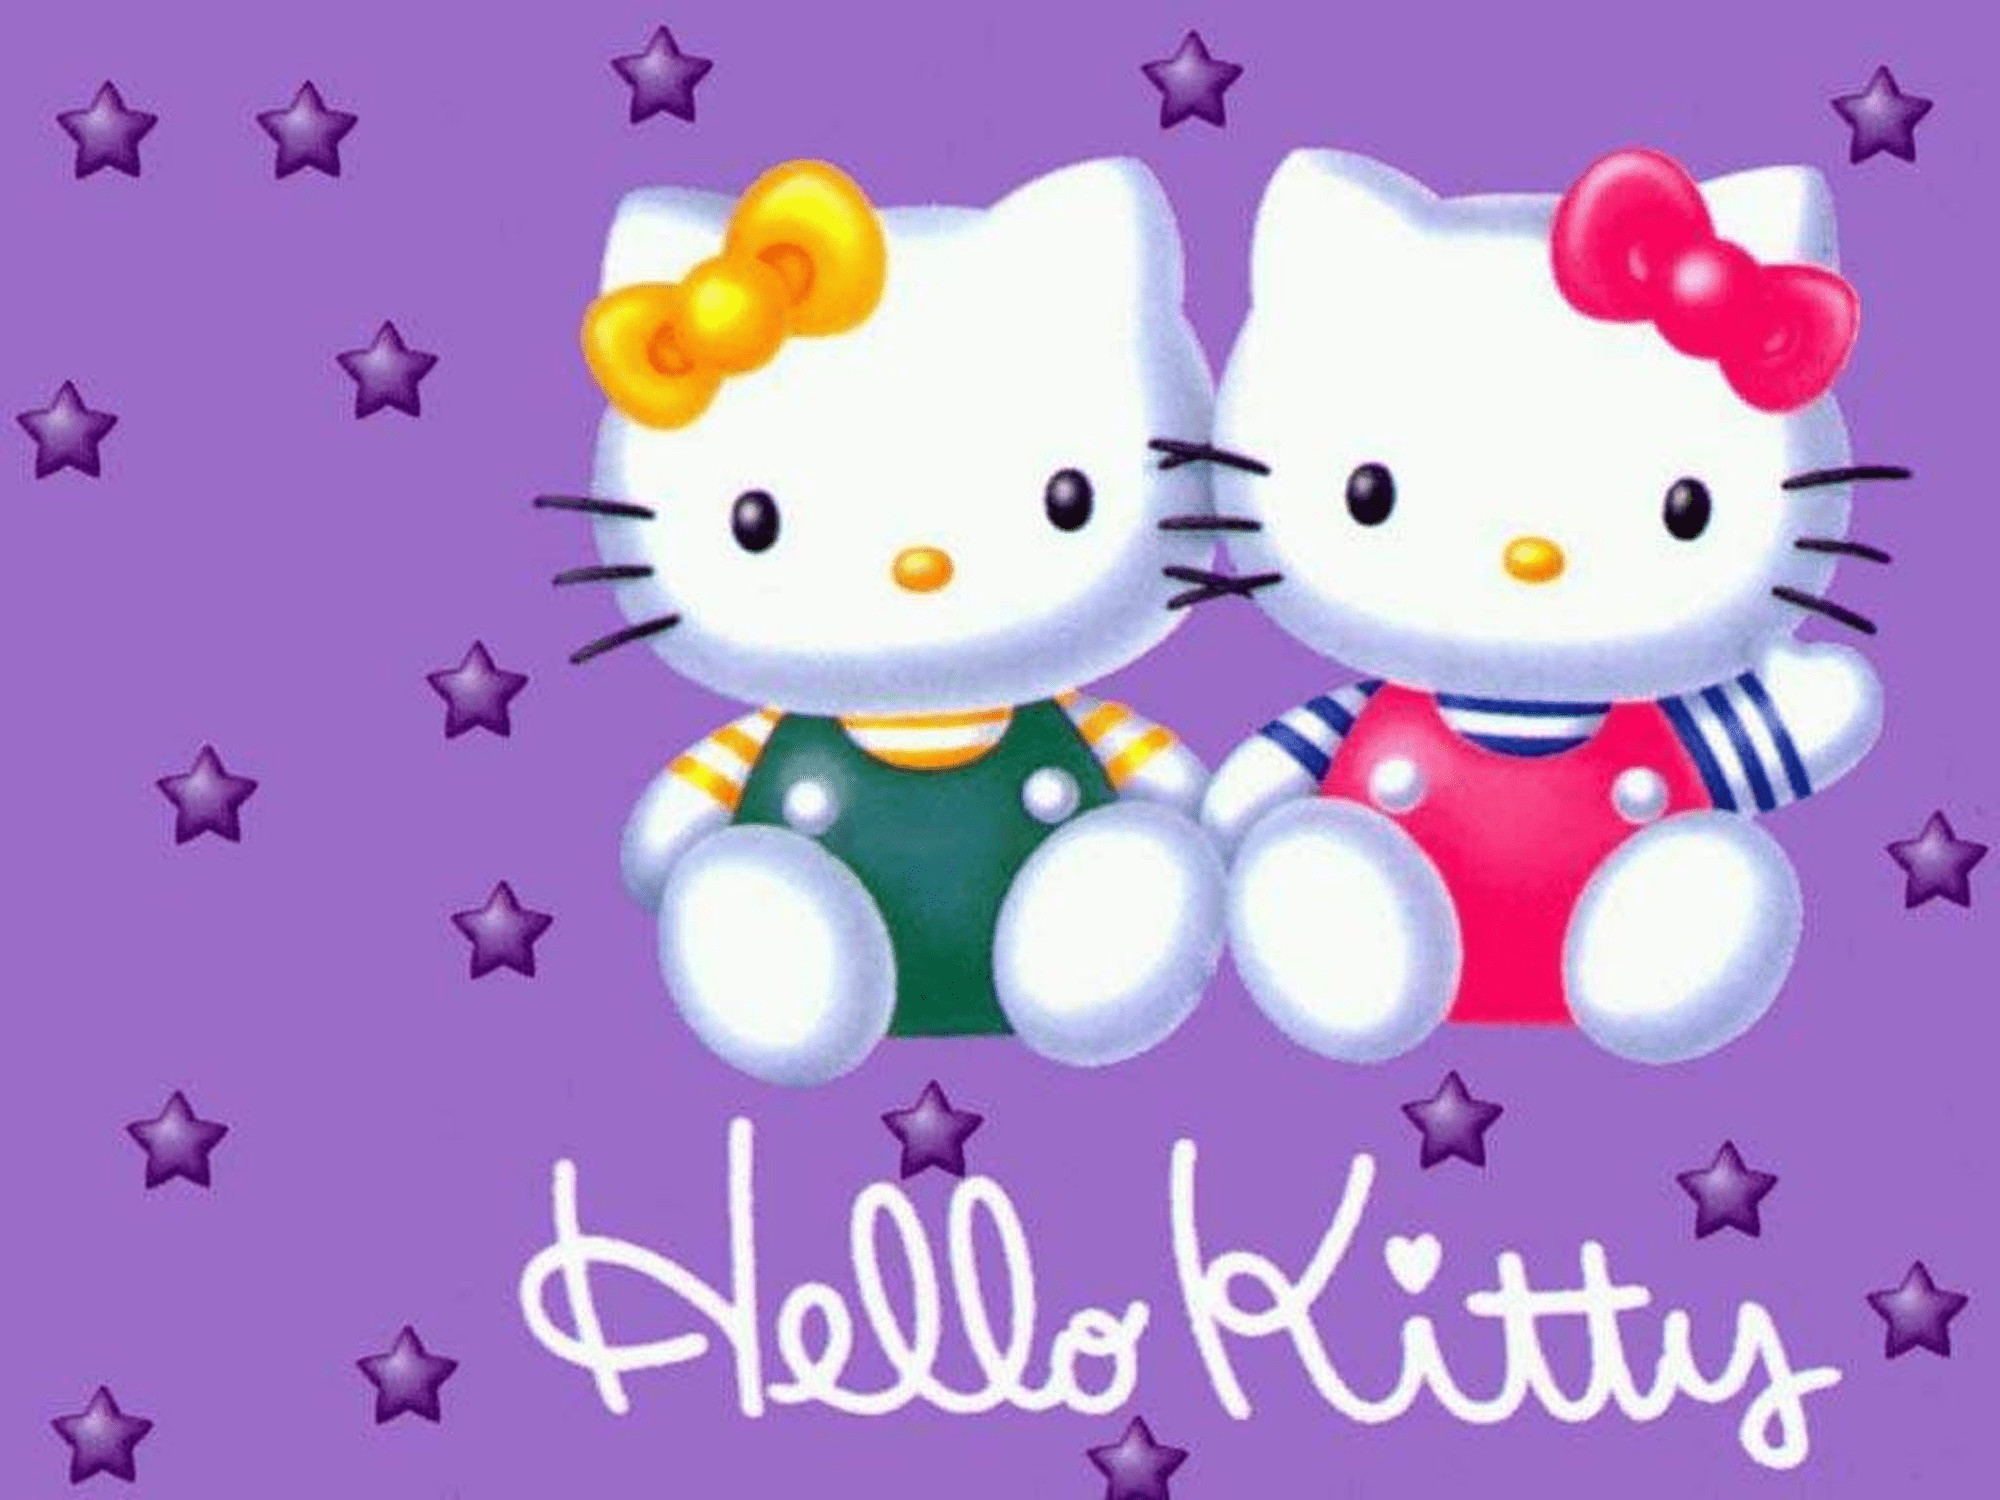 Simple Wallpaper Hello Kitty Holiday - 875729-hello-kitty-winter-wallpaper-2000x1500-for-samsung  Pictures_119198.jpg